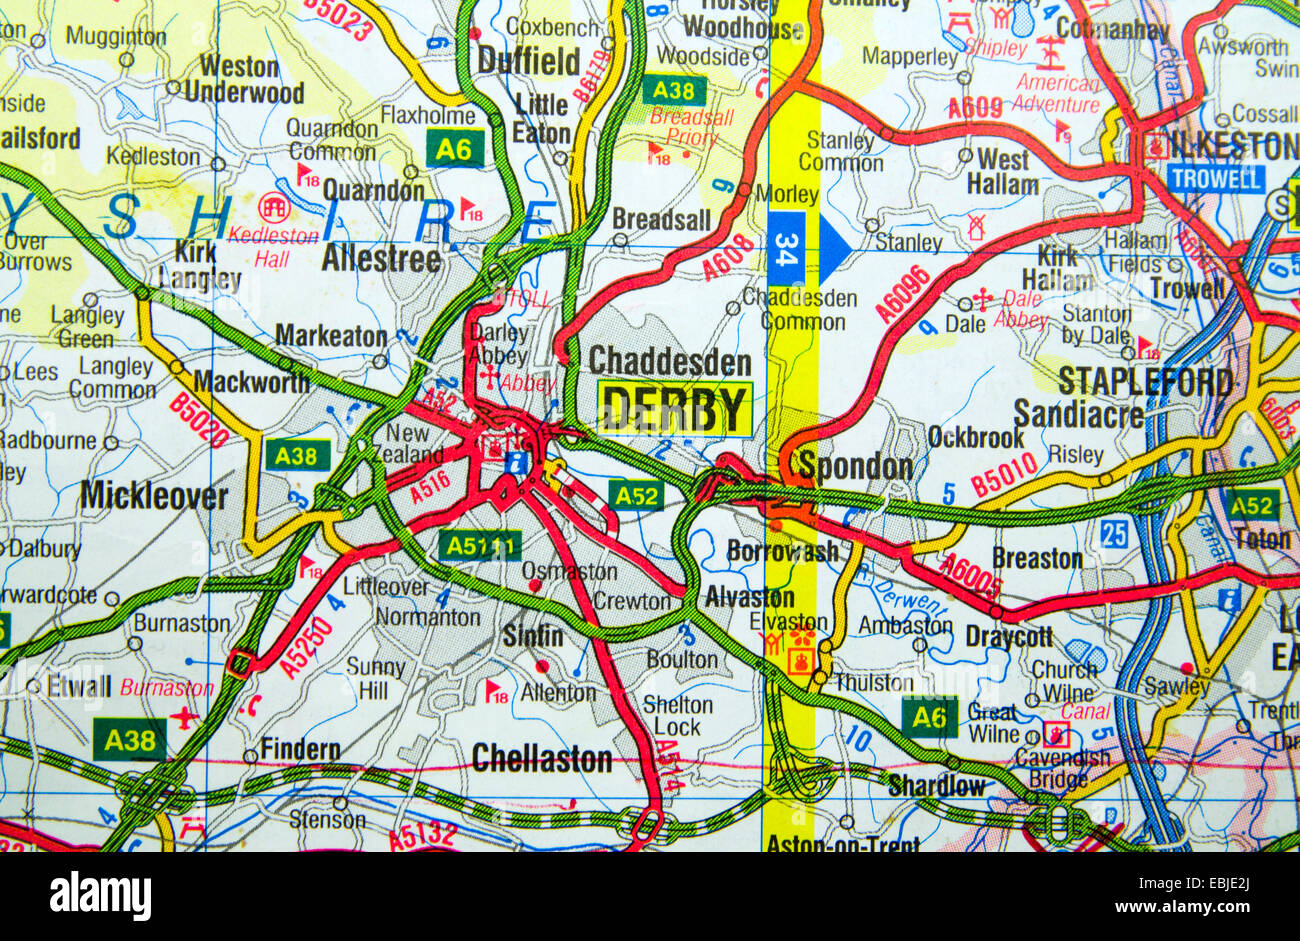 Road Map of Derby, England Stock Photo: 76008874 - Alamy